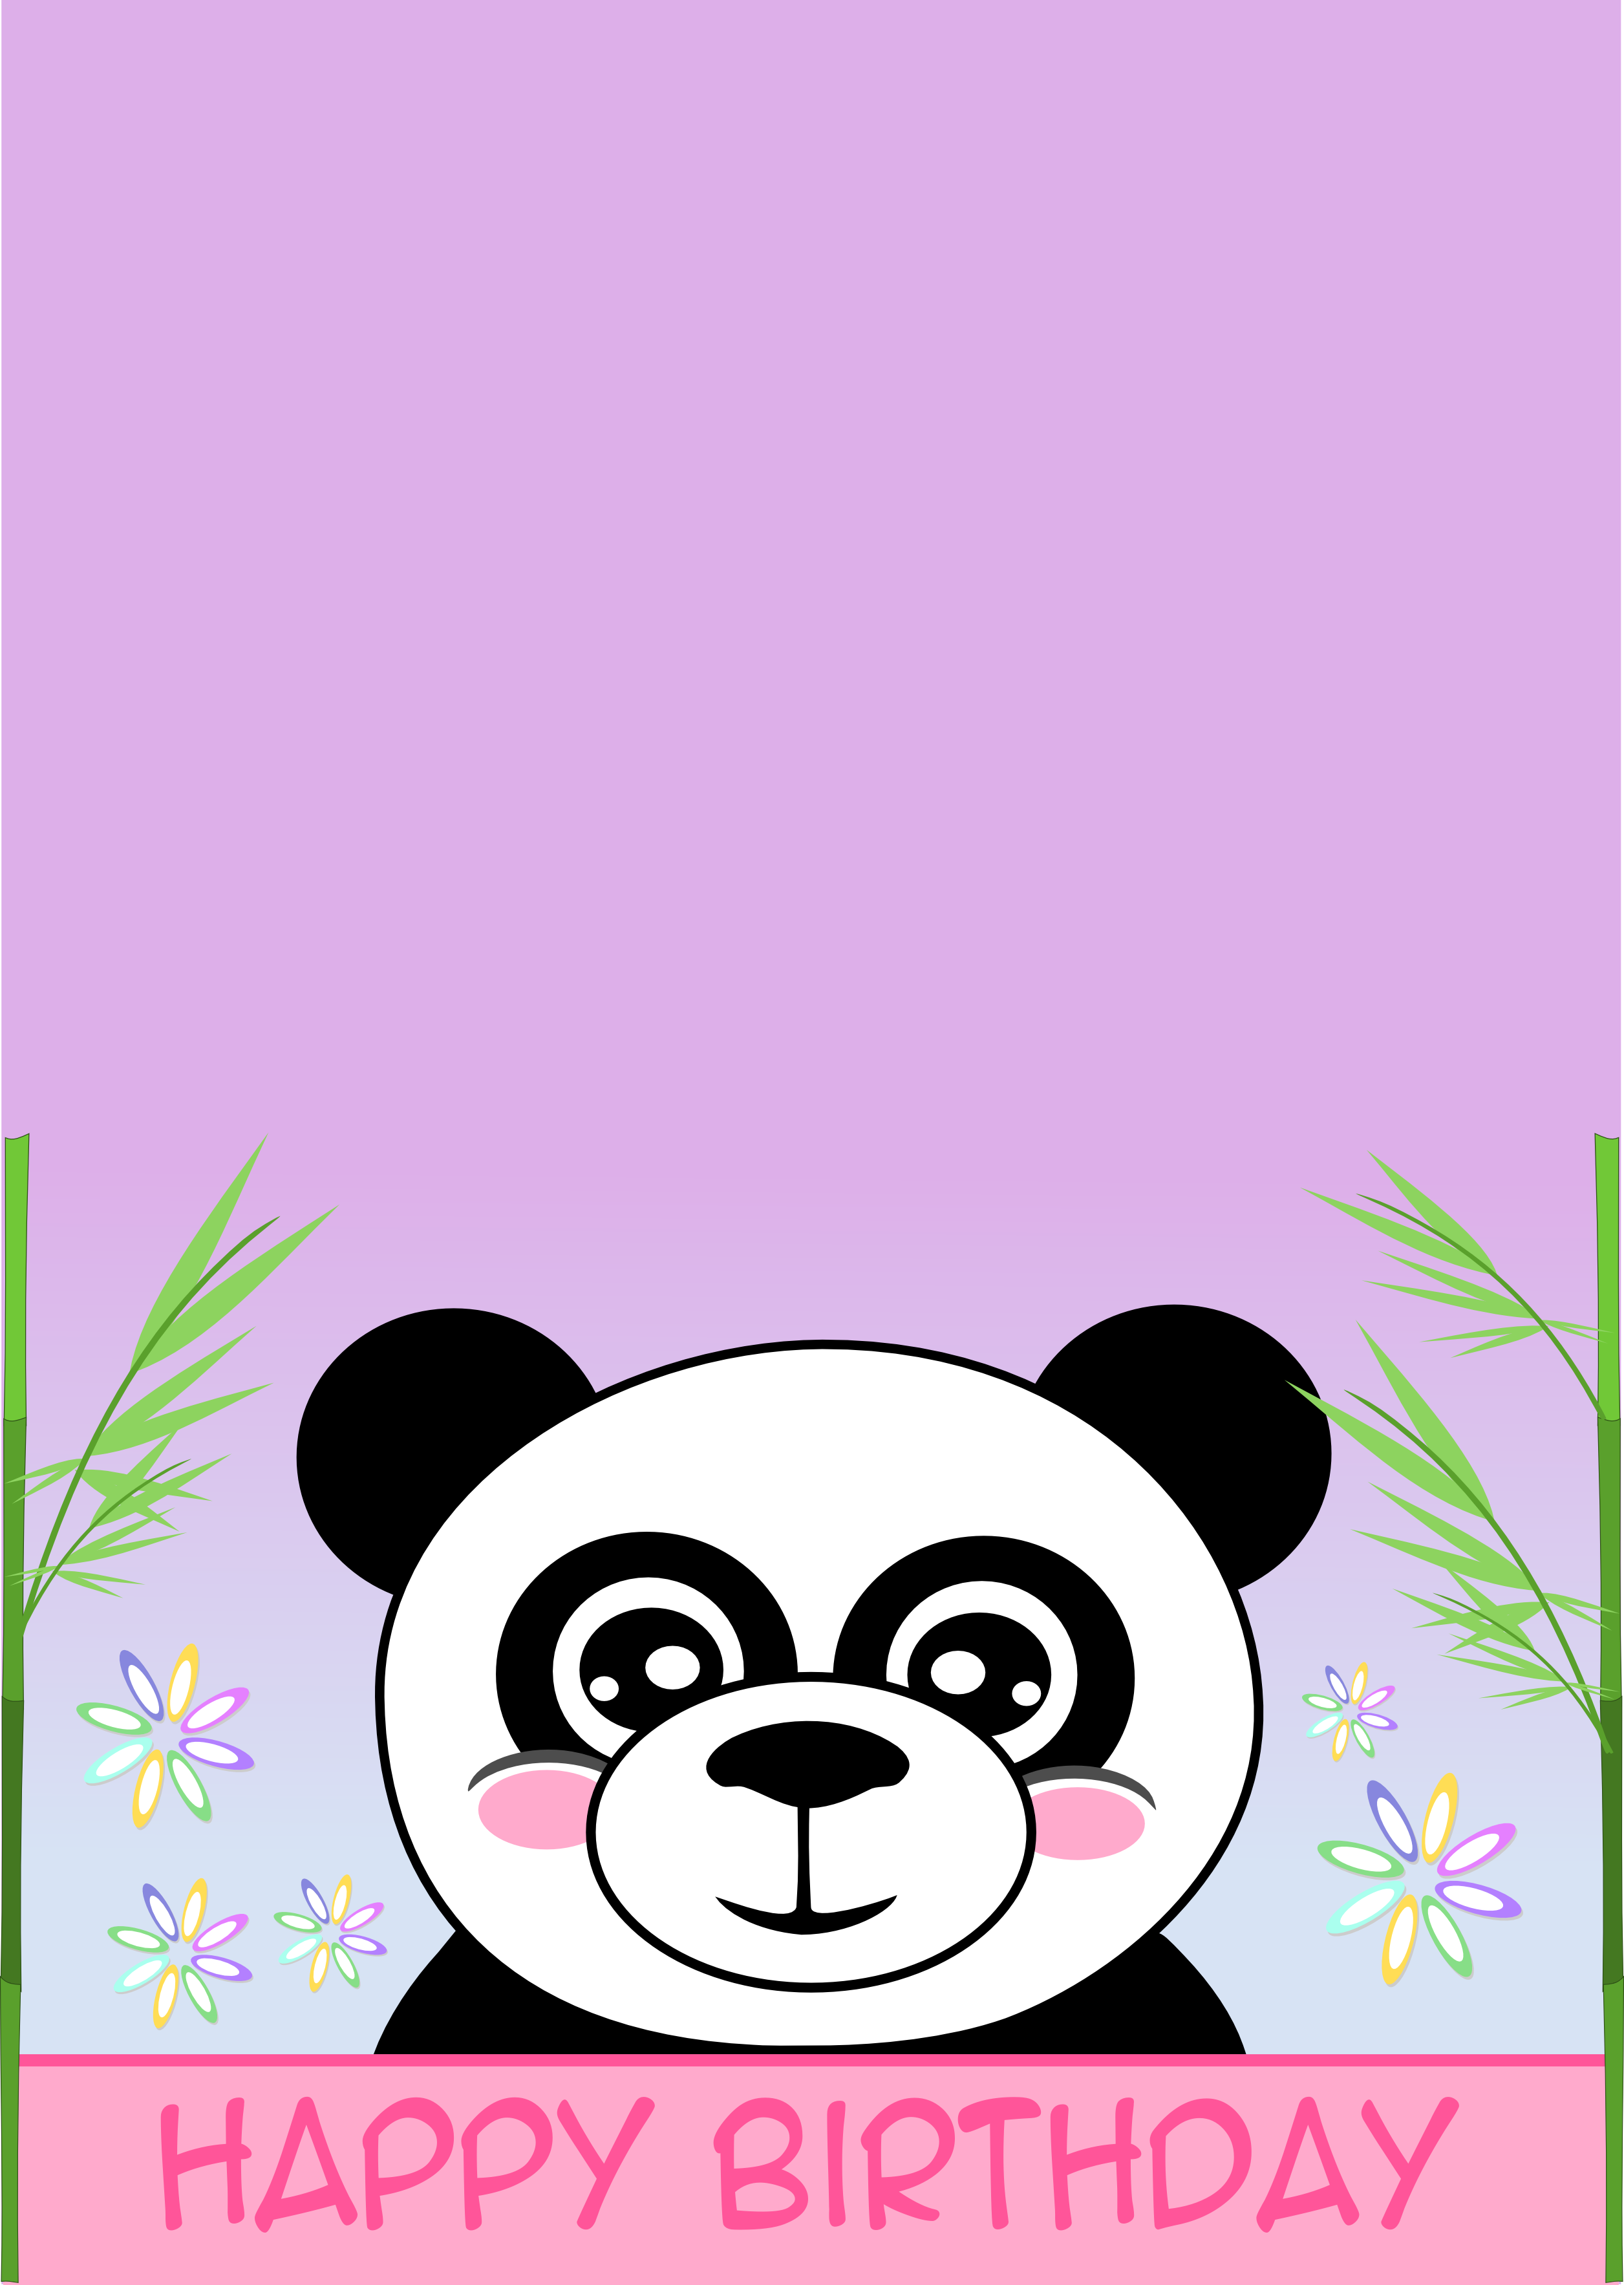 Printable Cards Panda Birthday Cards Printable Cards Happy Birthday Cards